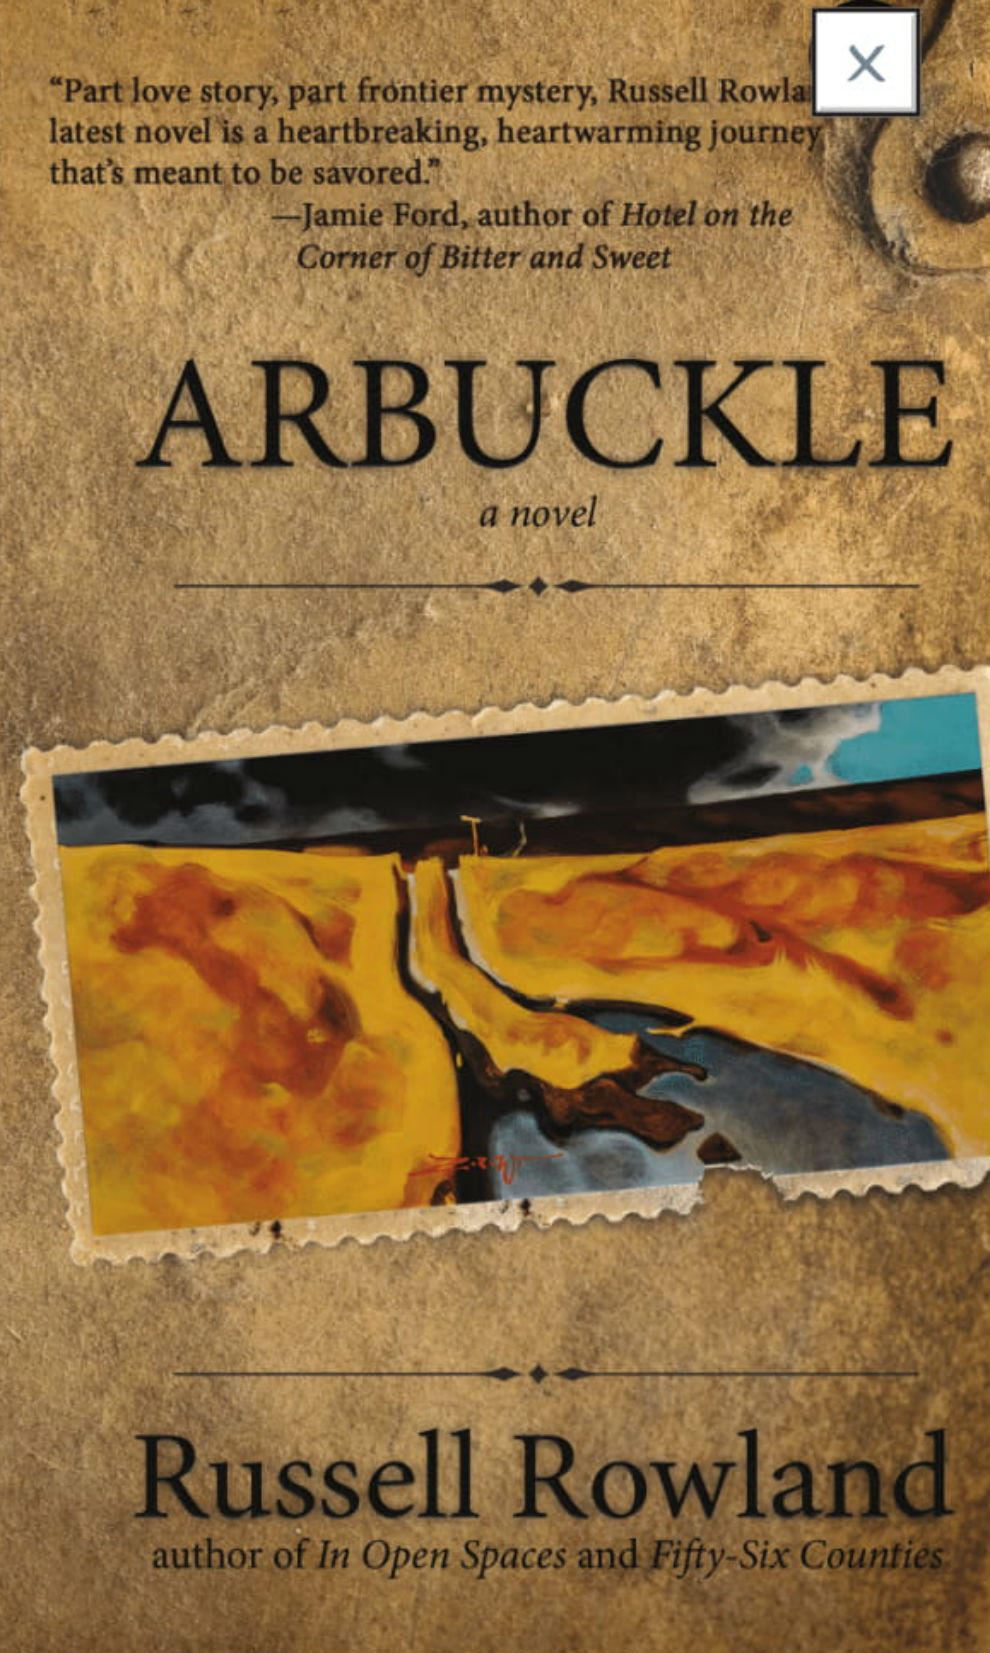 Arbuckle by Russell Rowland